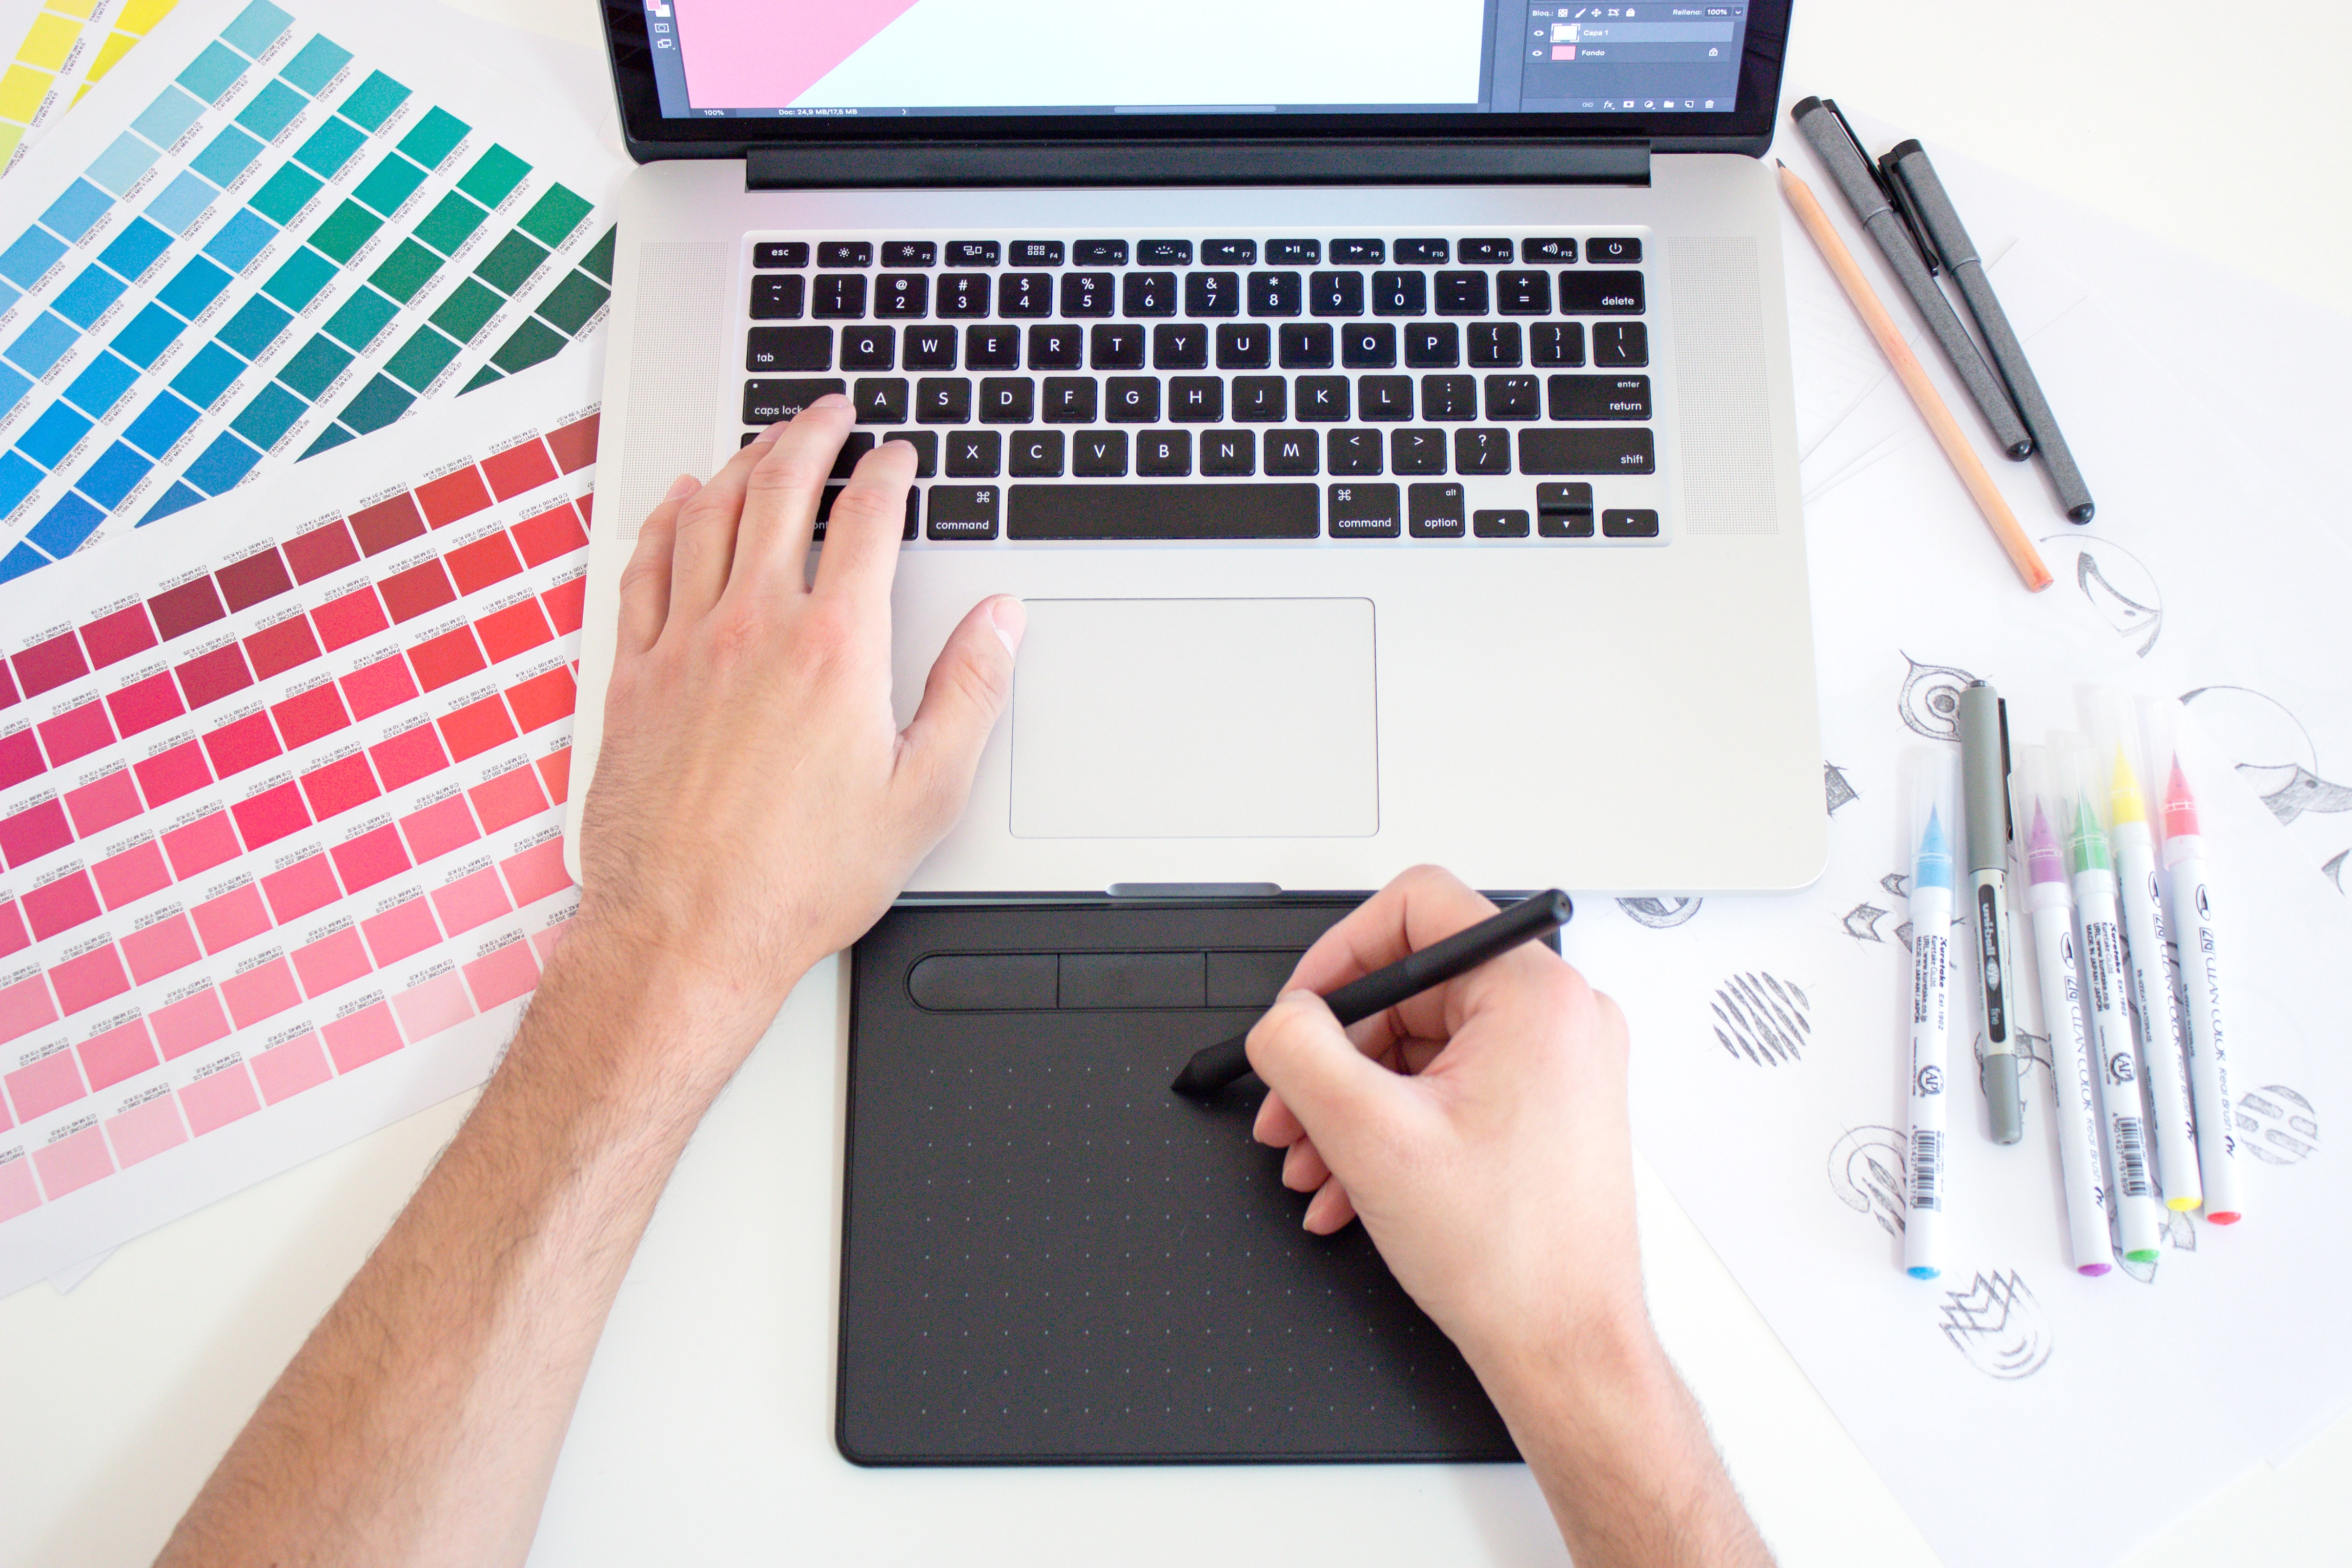 Graphic designer working on a Macbook laptop using a trackpad, color charts and markers; image by Theme Photos, via Unsplash.com.